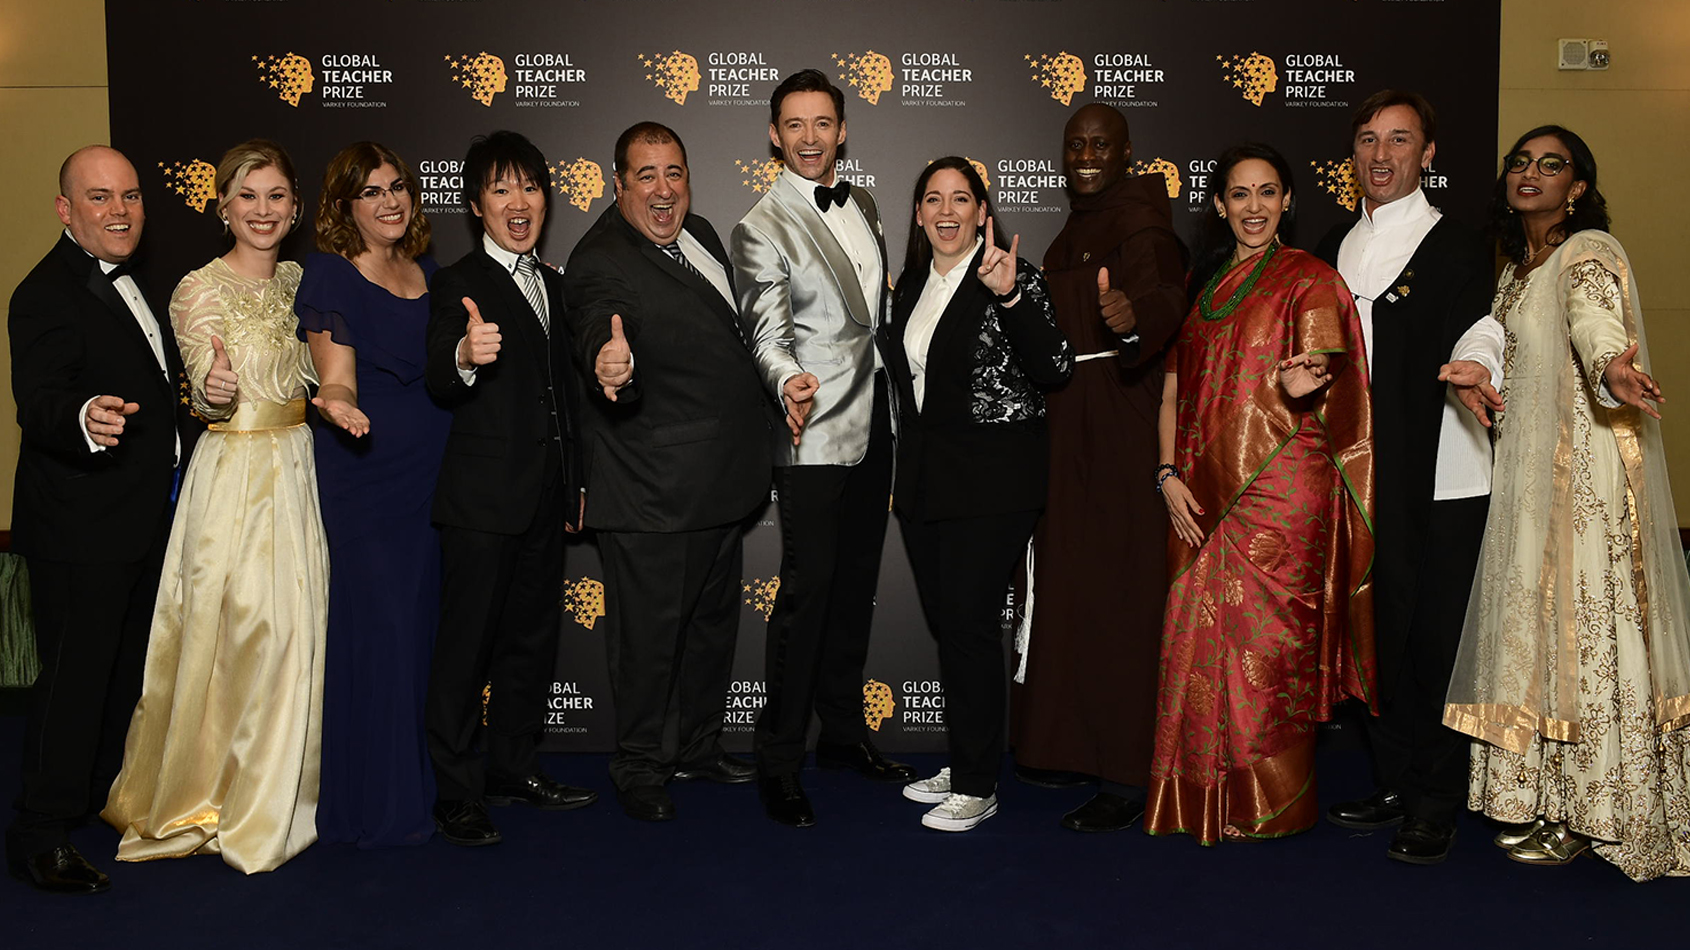 Andrew Moffat with Hugh Jackman and other Global Teacher Prize finalists.